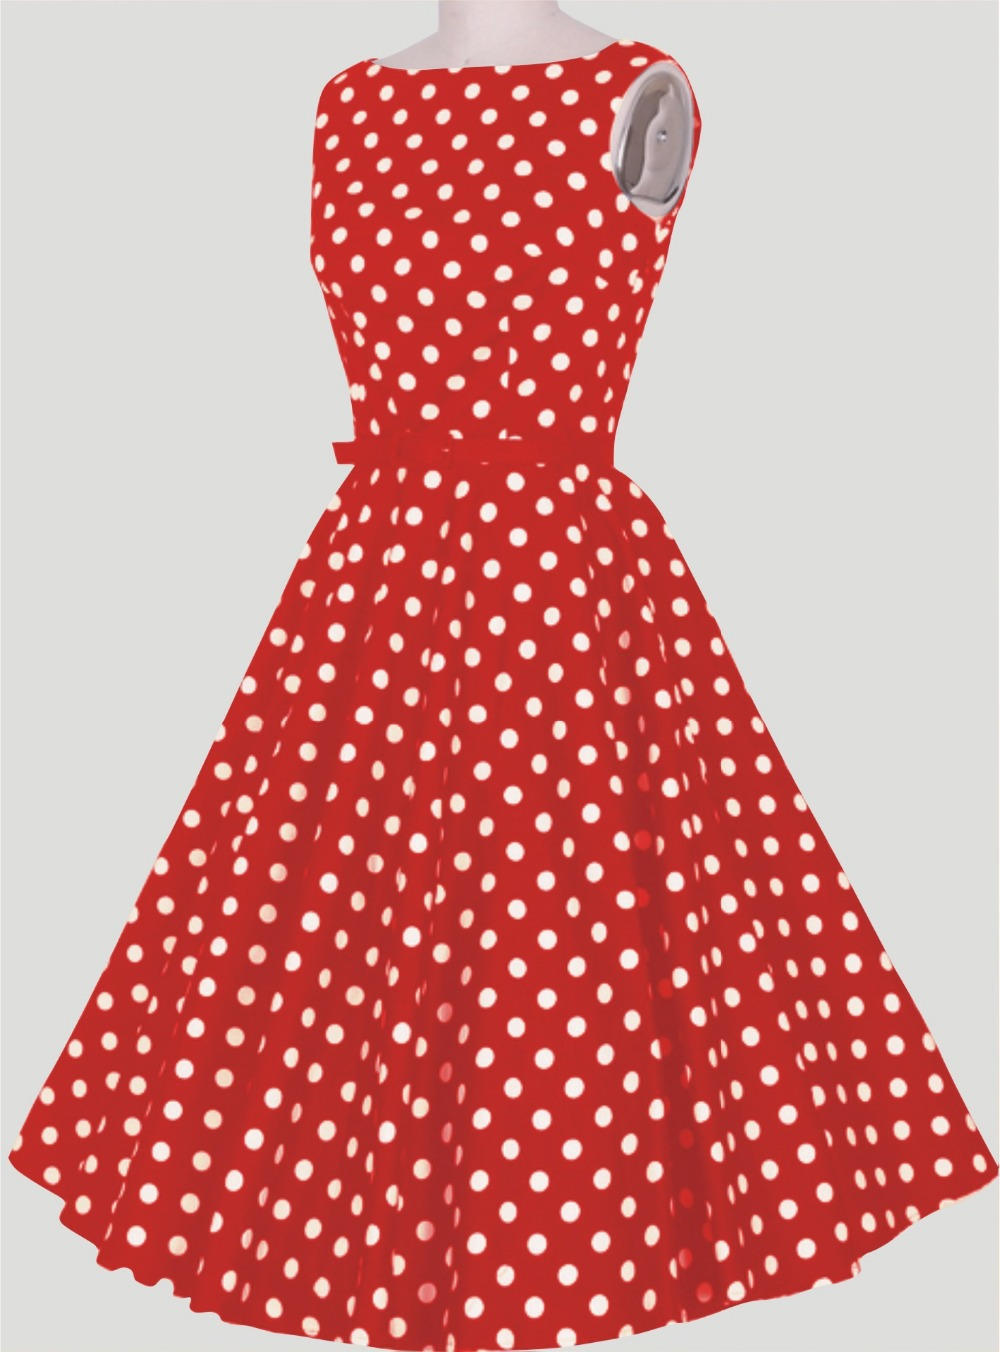 2015 summer casual dress brief red white polka dots vintage style party dress womens dress fast delivery drop shipping in stock(China (Mainland))